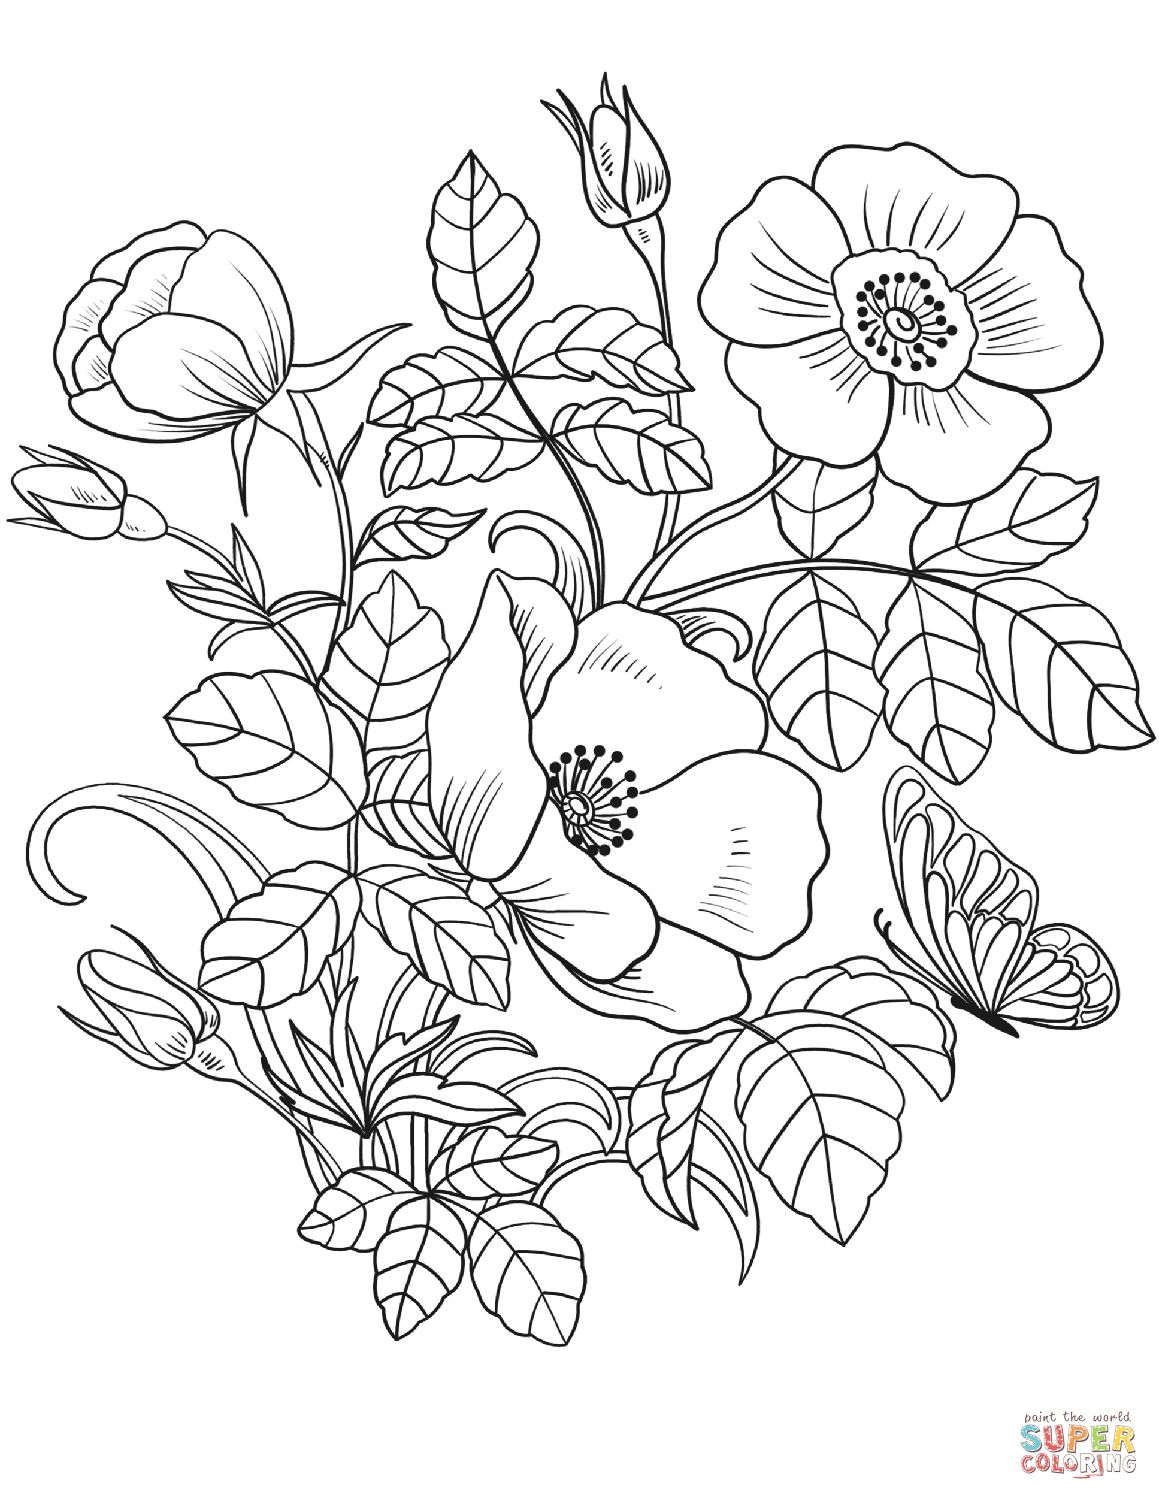 Spring Coloring Page Spring Flowers Coloring Page Free Printable Coloring Pages Davemelillo Com Flower Coloring Sheets Spring Coloring Pages Spring Coloring Sheets